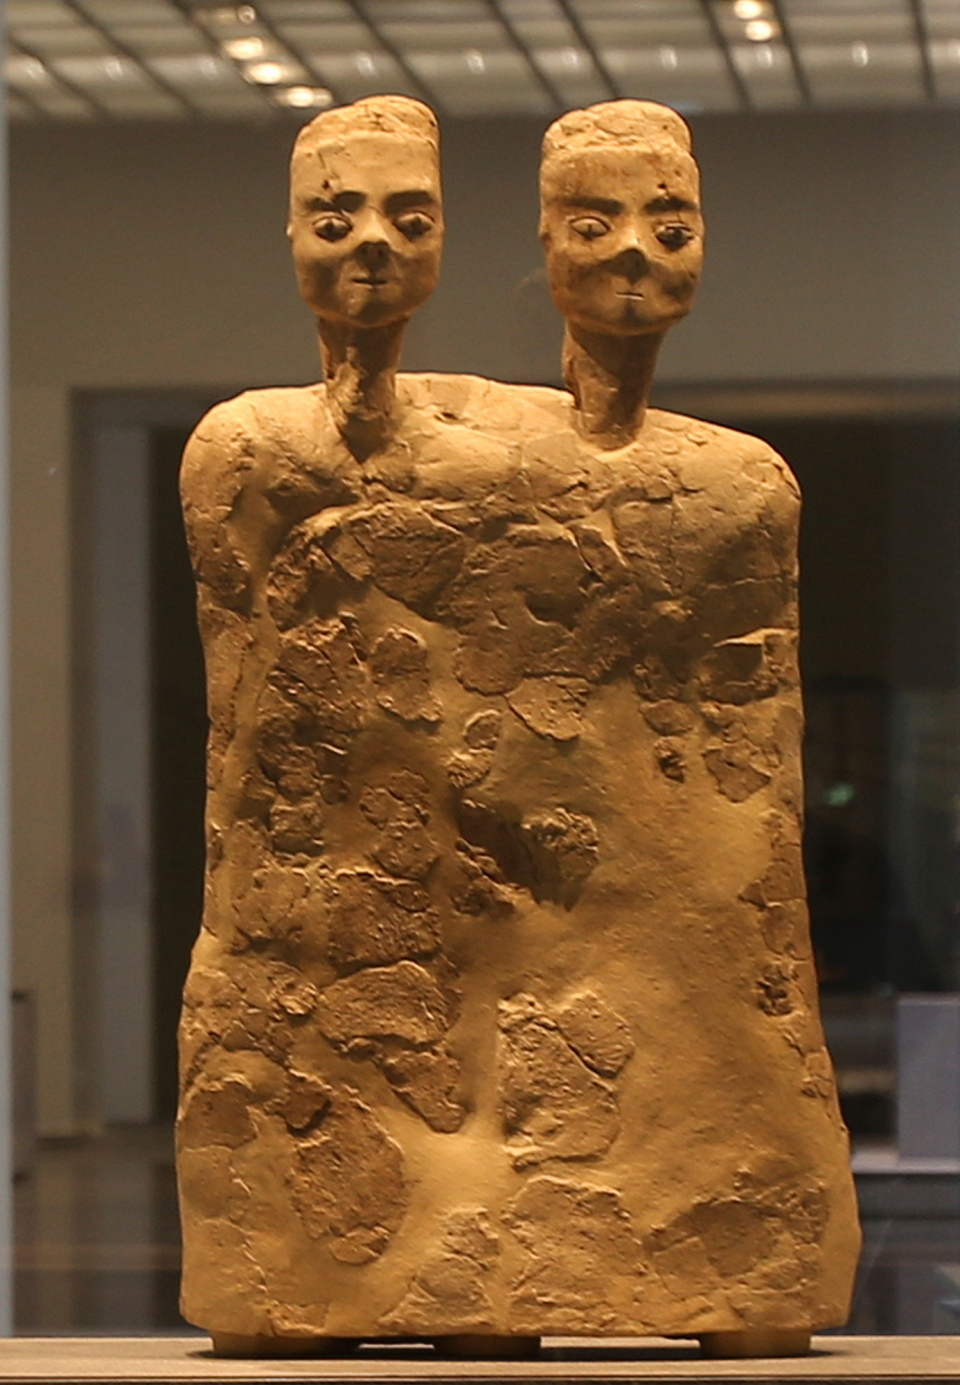 """In this Monday, Nov. 6, 2017 photo, """"Monumental Statue with two heads"""" from Jordan about 6500 BCE, is displayed at the new Louvre Museum in Abu Dhabi, United Arab Emirates. (AP Photo/Kamran Jebreili)"""